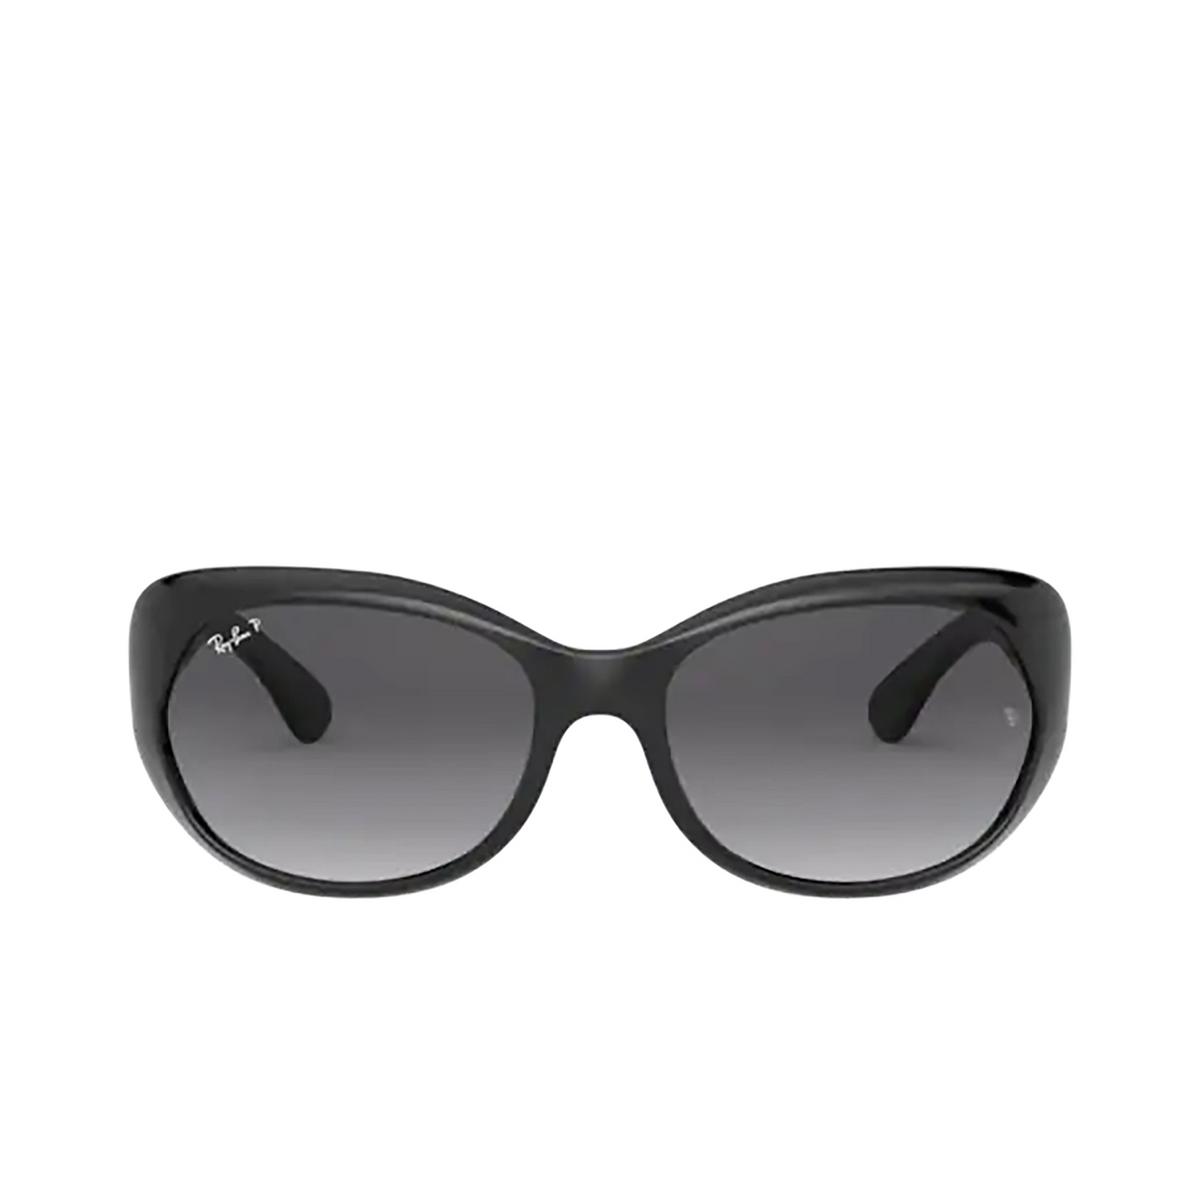 Ray-Ban® Oval Sunglasses: RB4325 color Black 601/T3 - front view.